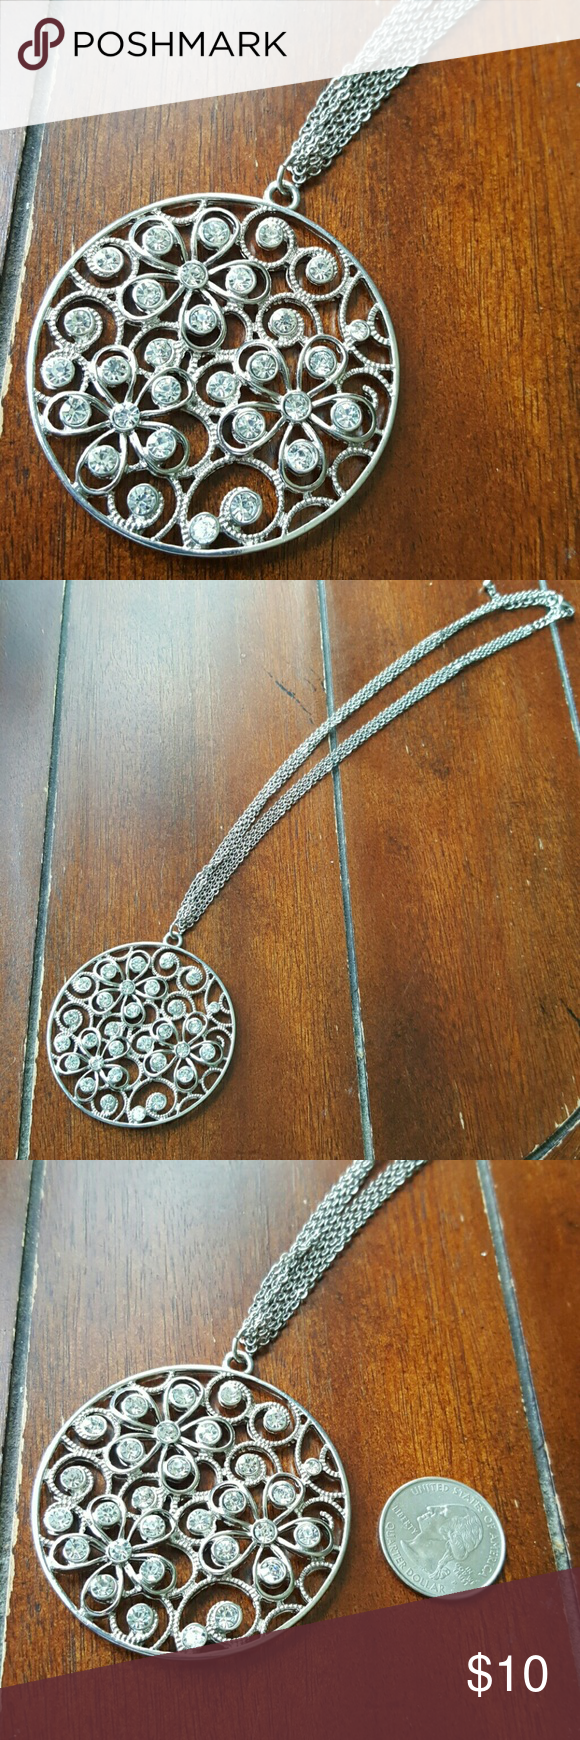 """Pendant necklace Silver costume jewelry necklace that has a flowery pendant with bling.  Chain is 18"""" long. Jewelry Necklaces"""